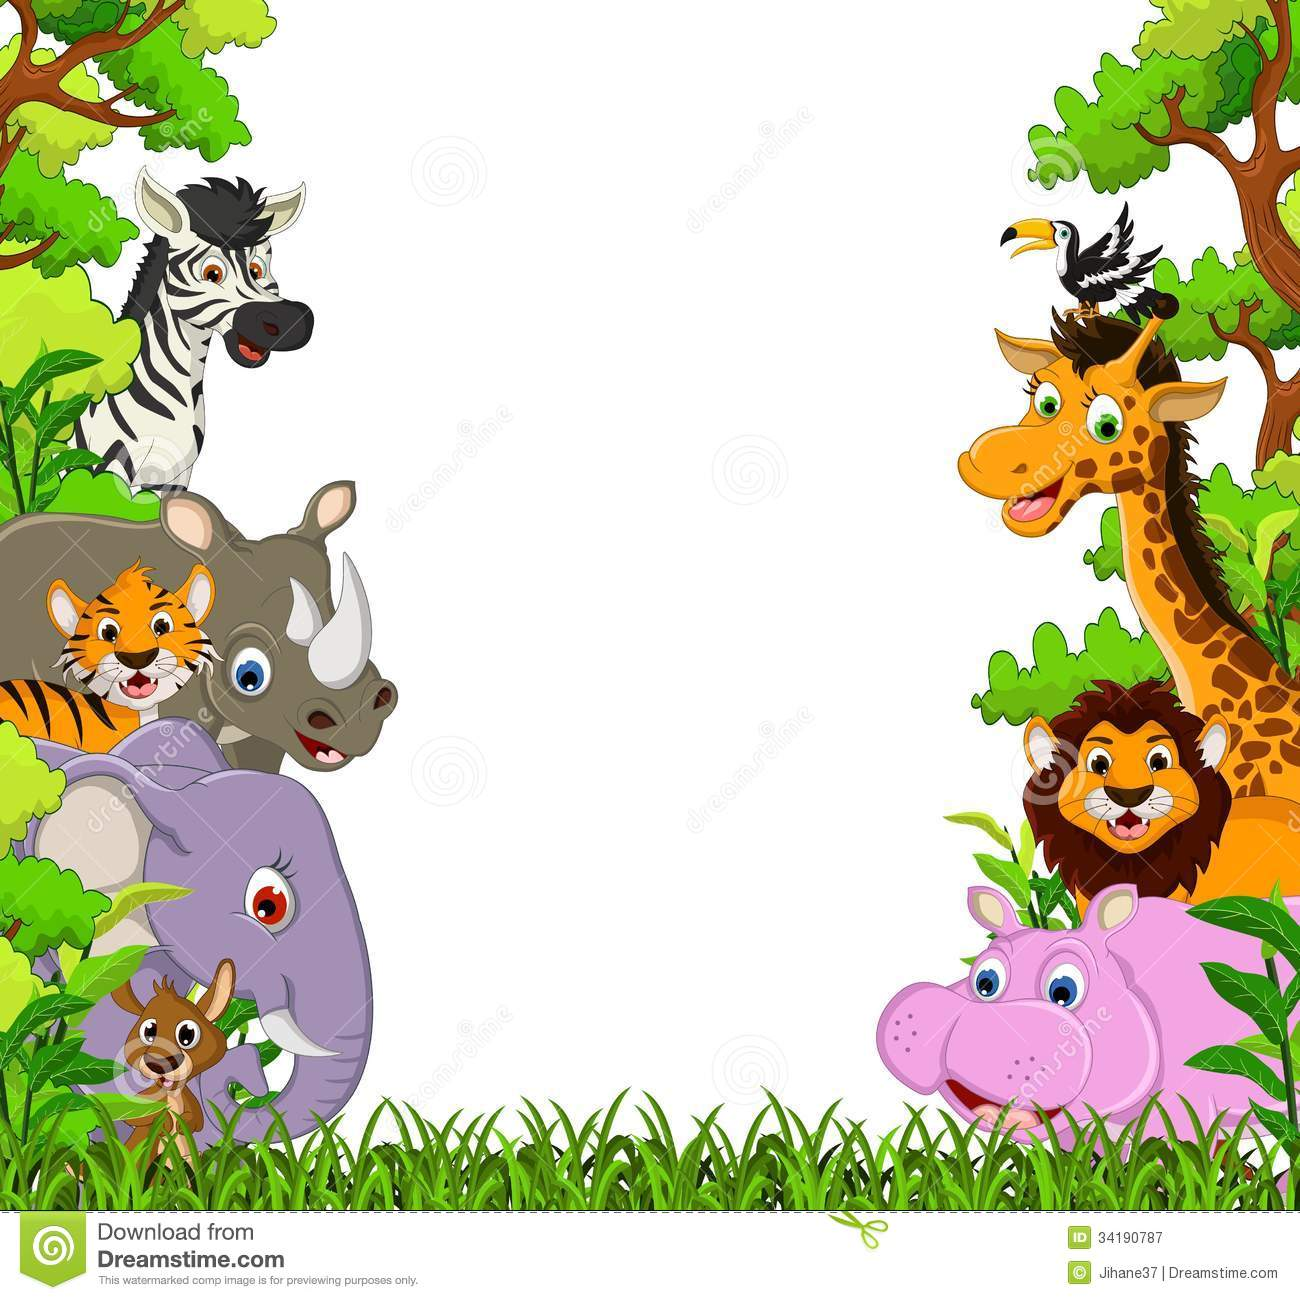 hight resolution of 1300x1300 image for free jungle animal clipart cartoon images cute animal